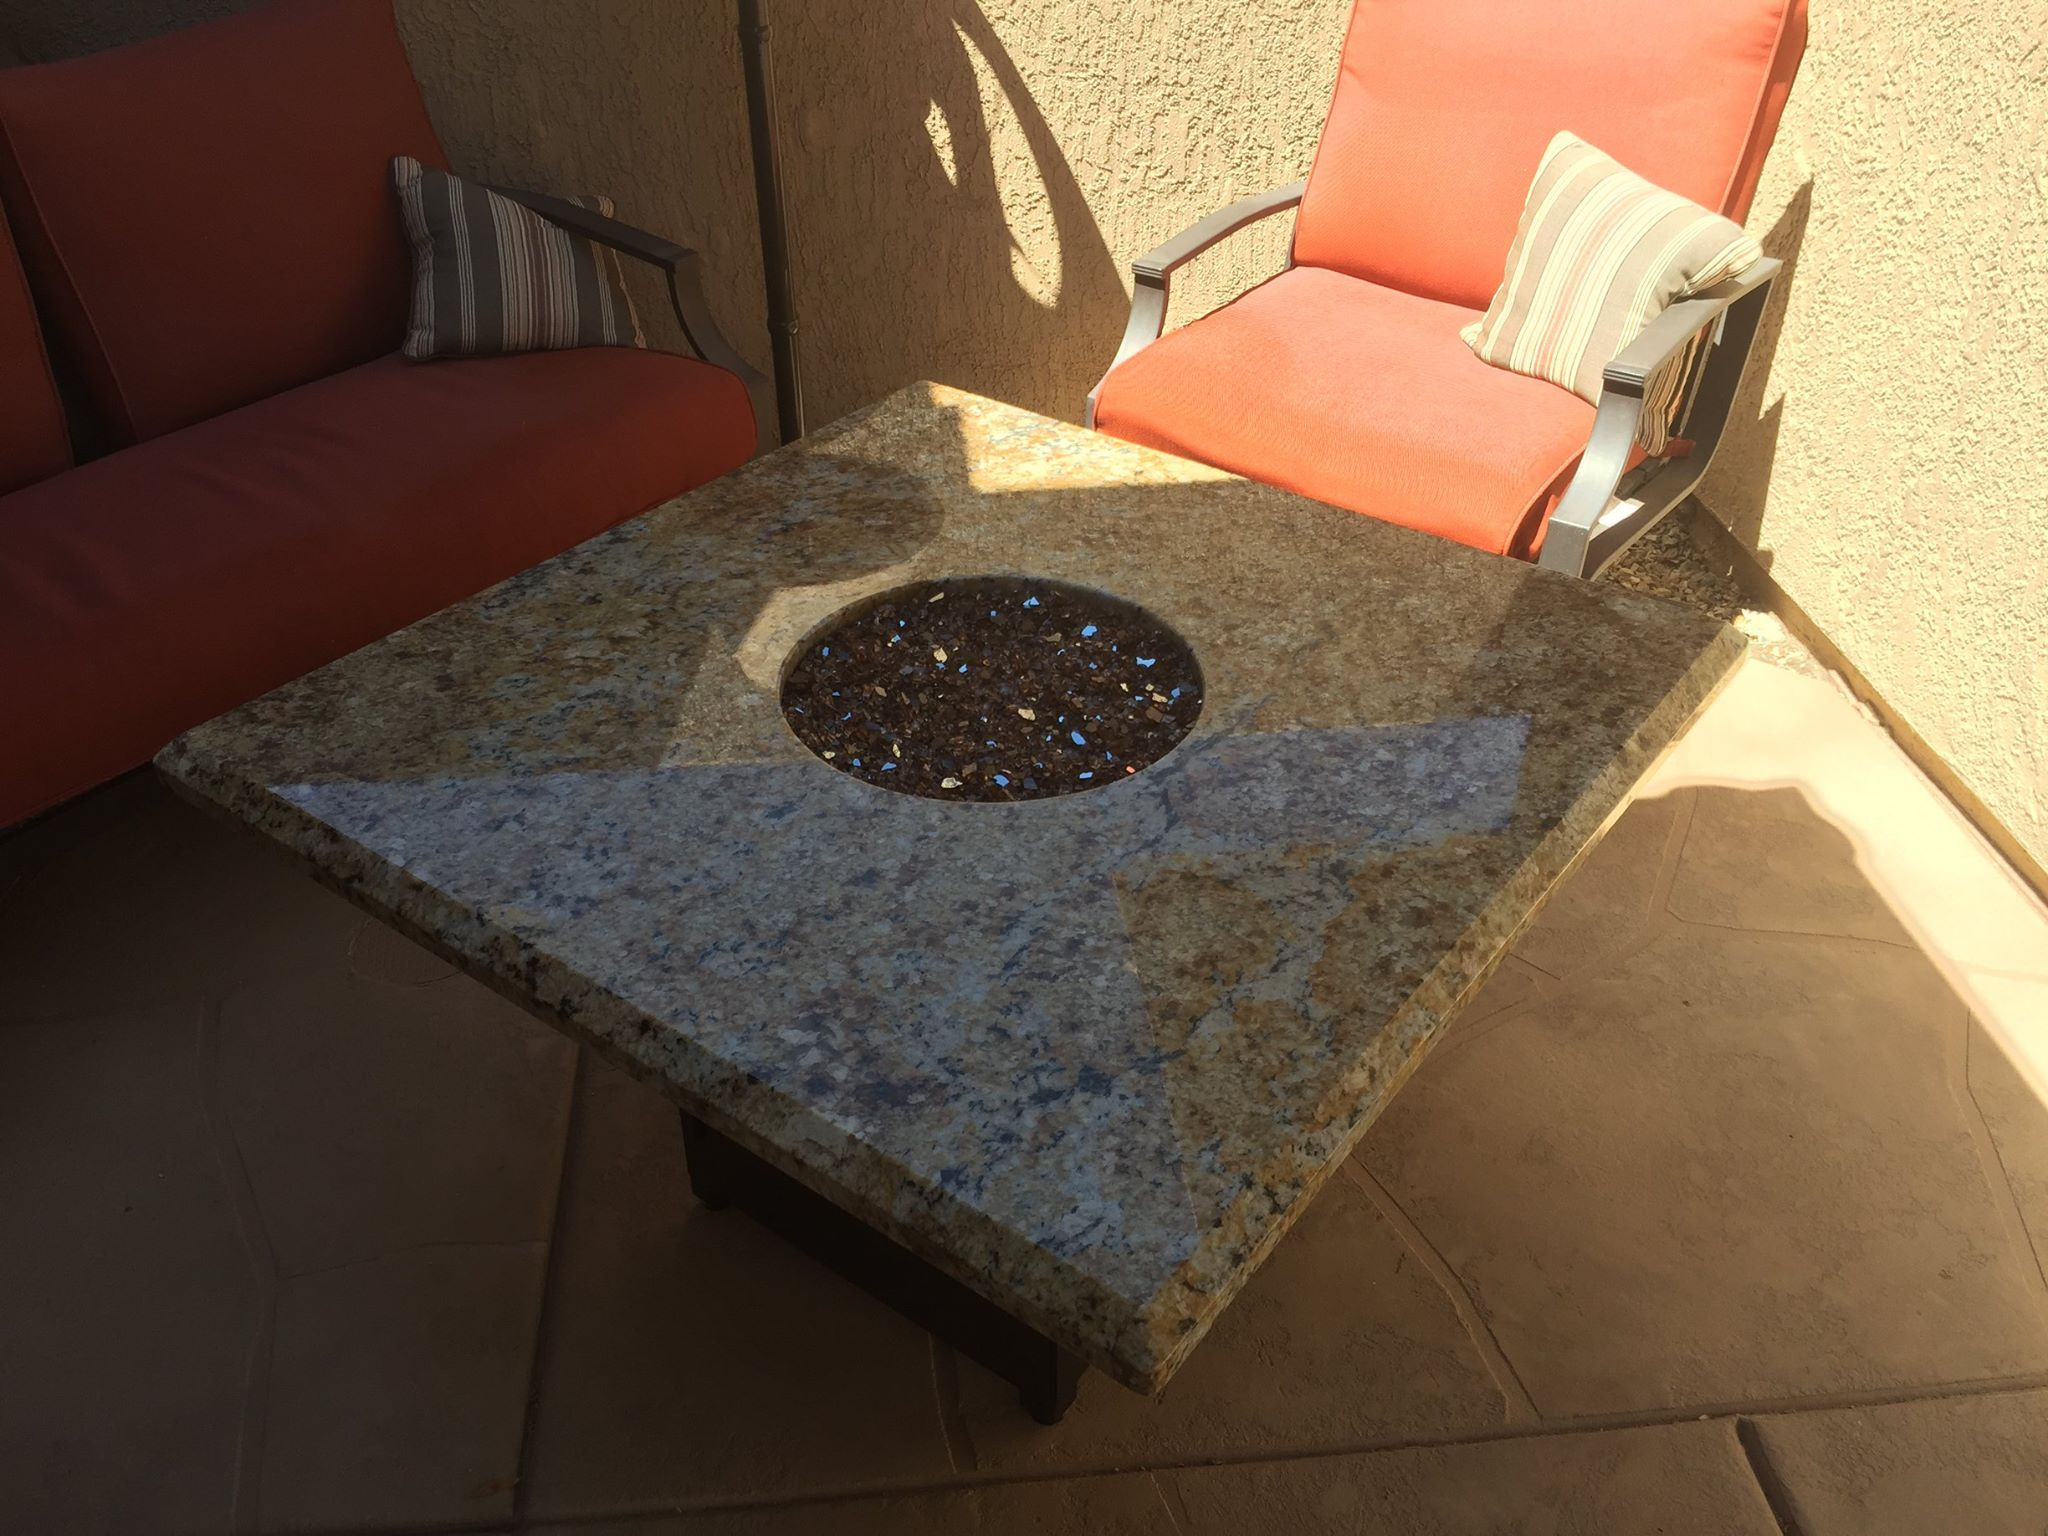 eb572022ed52ac40009b6a17a30eefc2 Top Result 50 Awesome Fire Pit Store Photography 2018 Hzt6